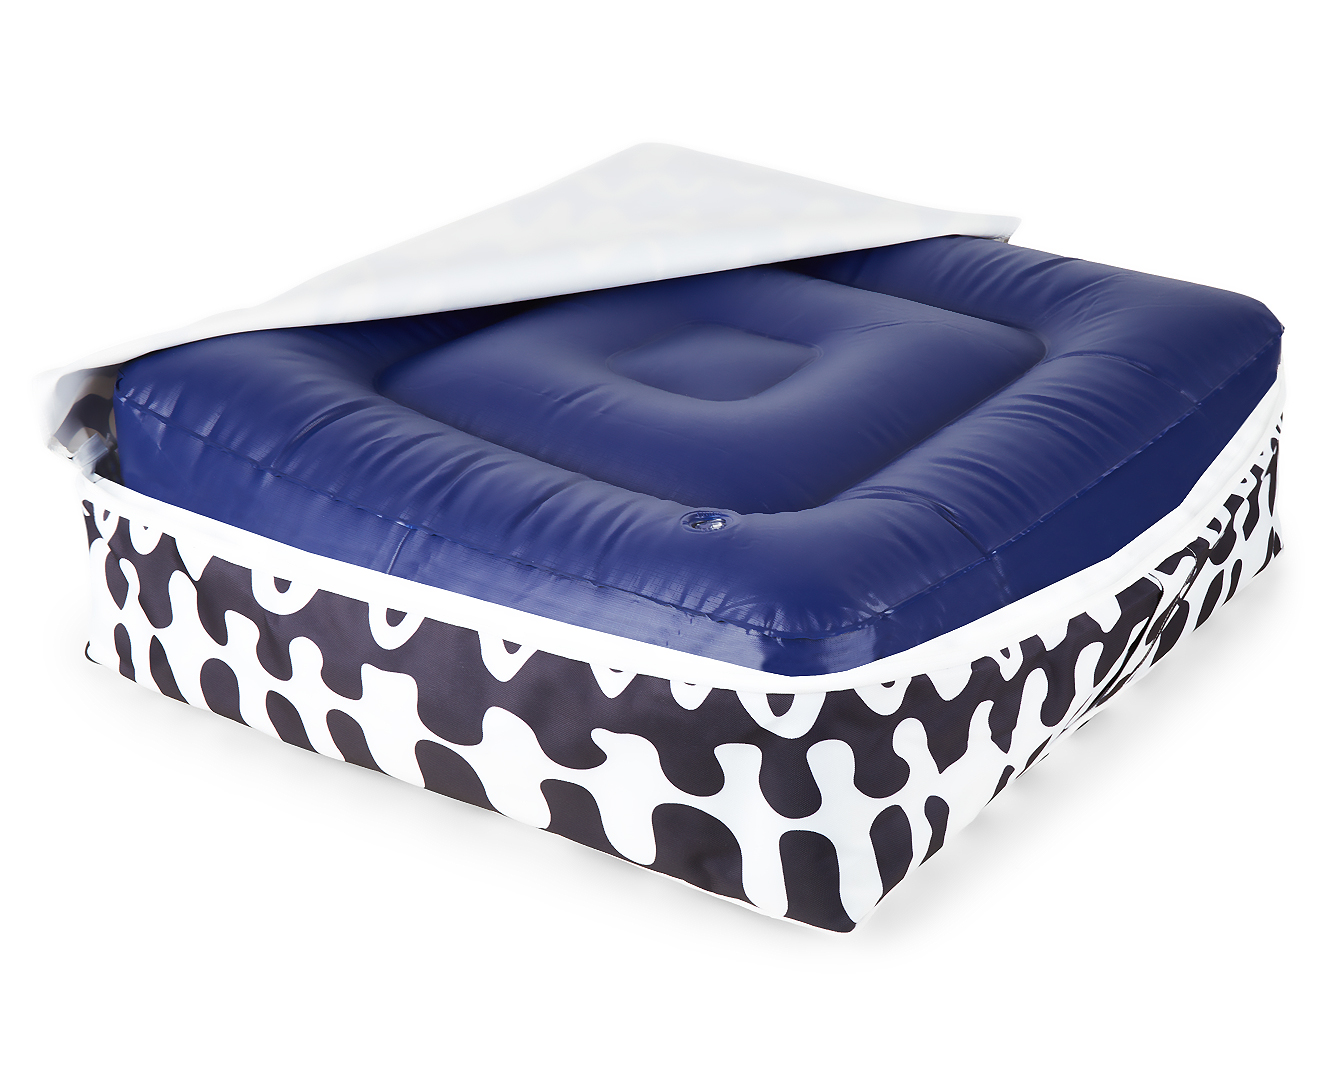 Gracious Living Outdoor Inflatable Air Ottoman Square